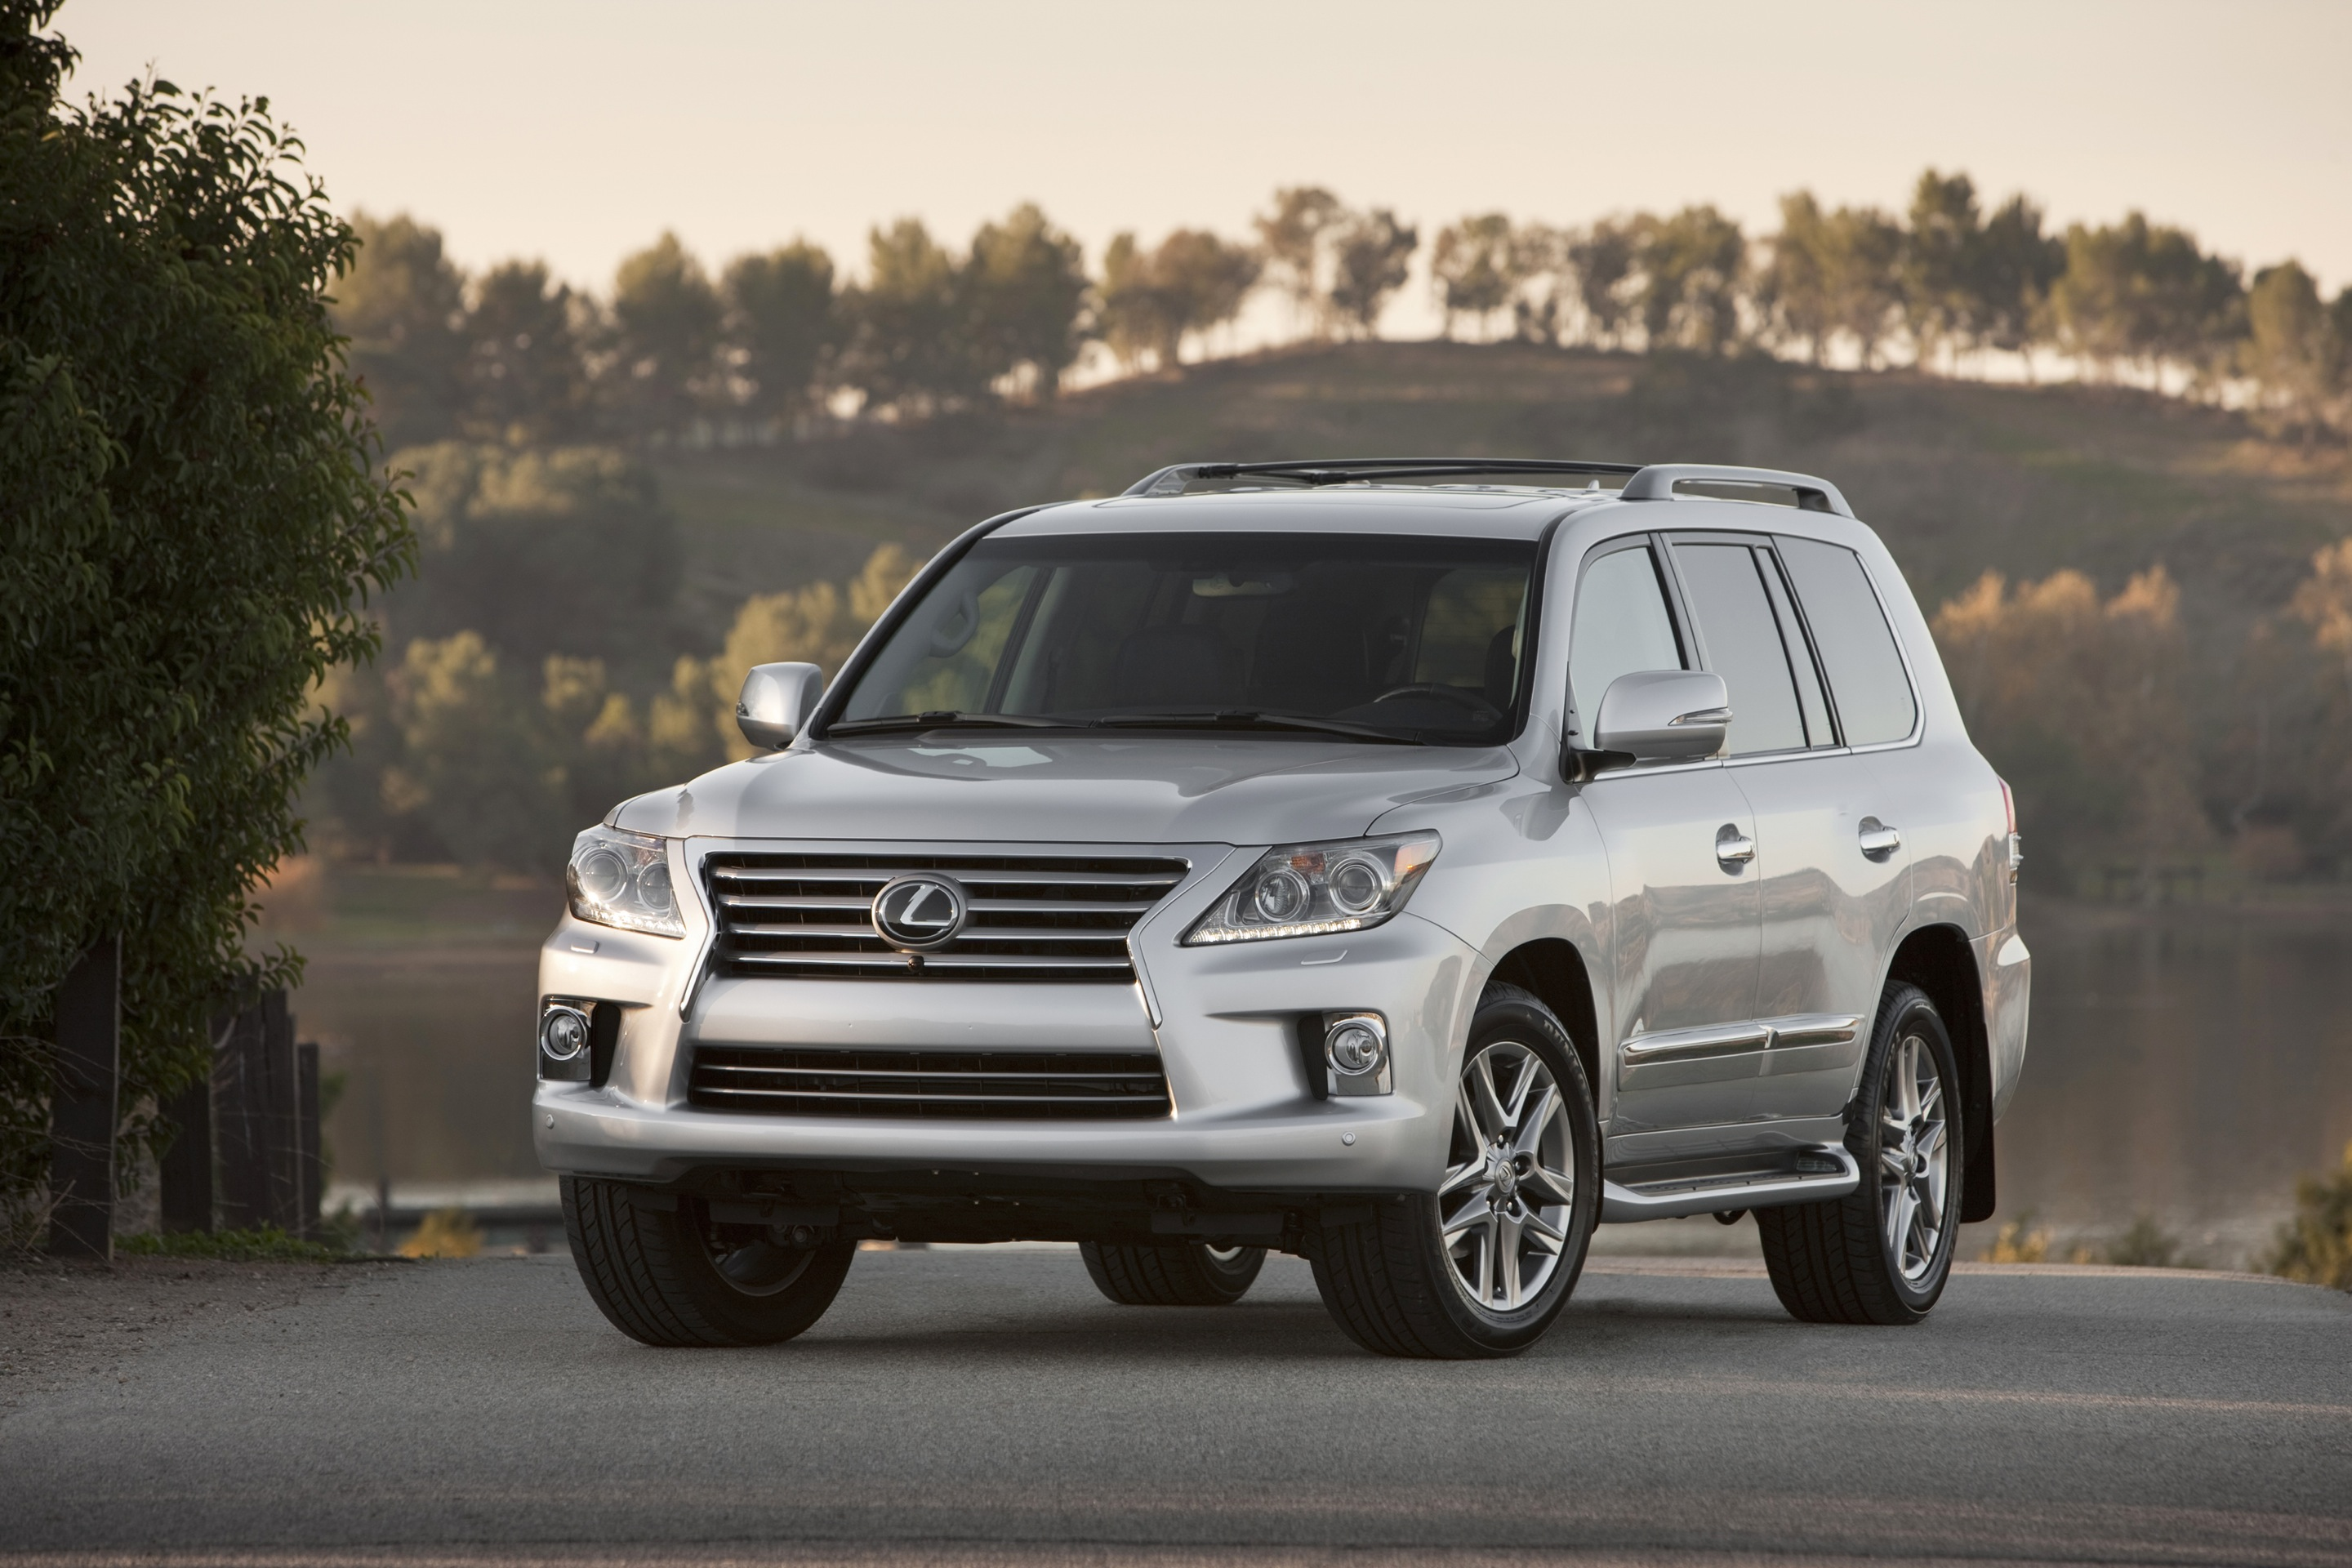 new and used lexus lx 570 prices photos reviews specs the car connection. Black Bedroom Furniture Sets. Home Design Ideas